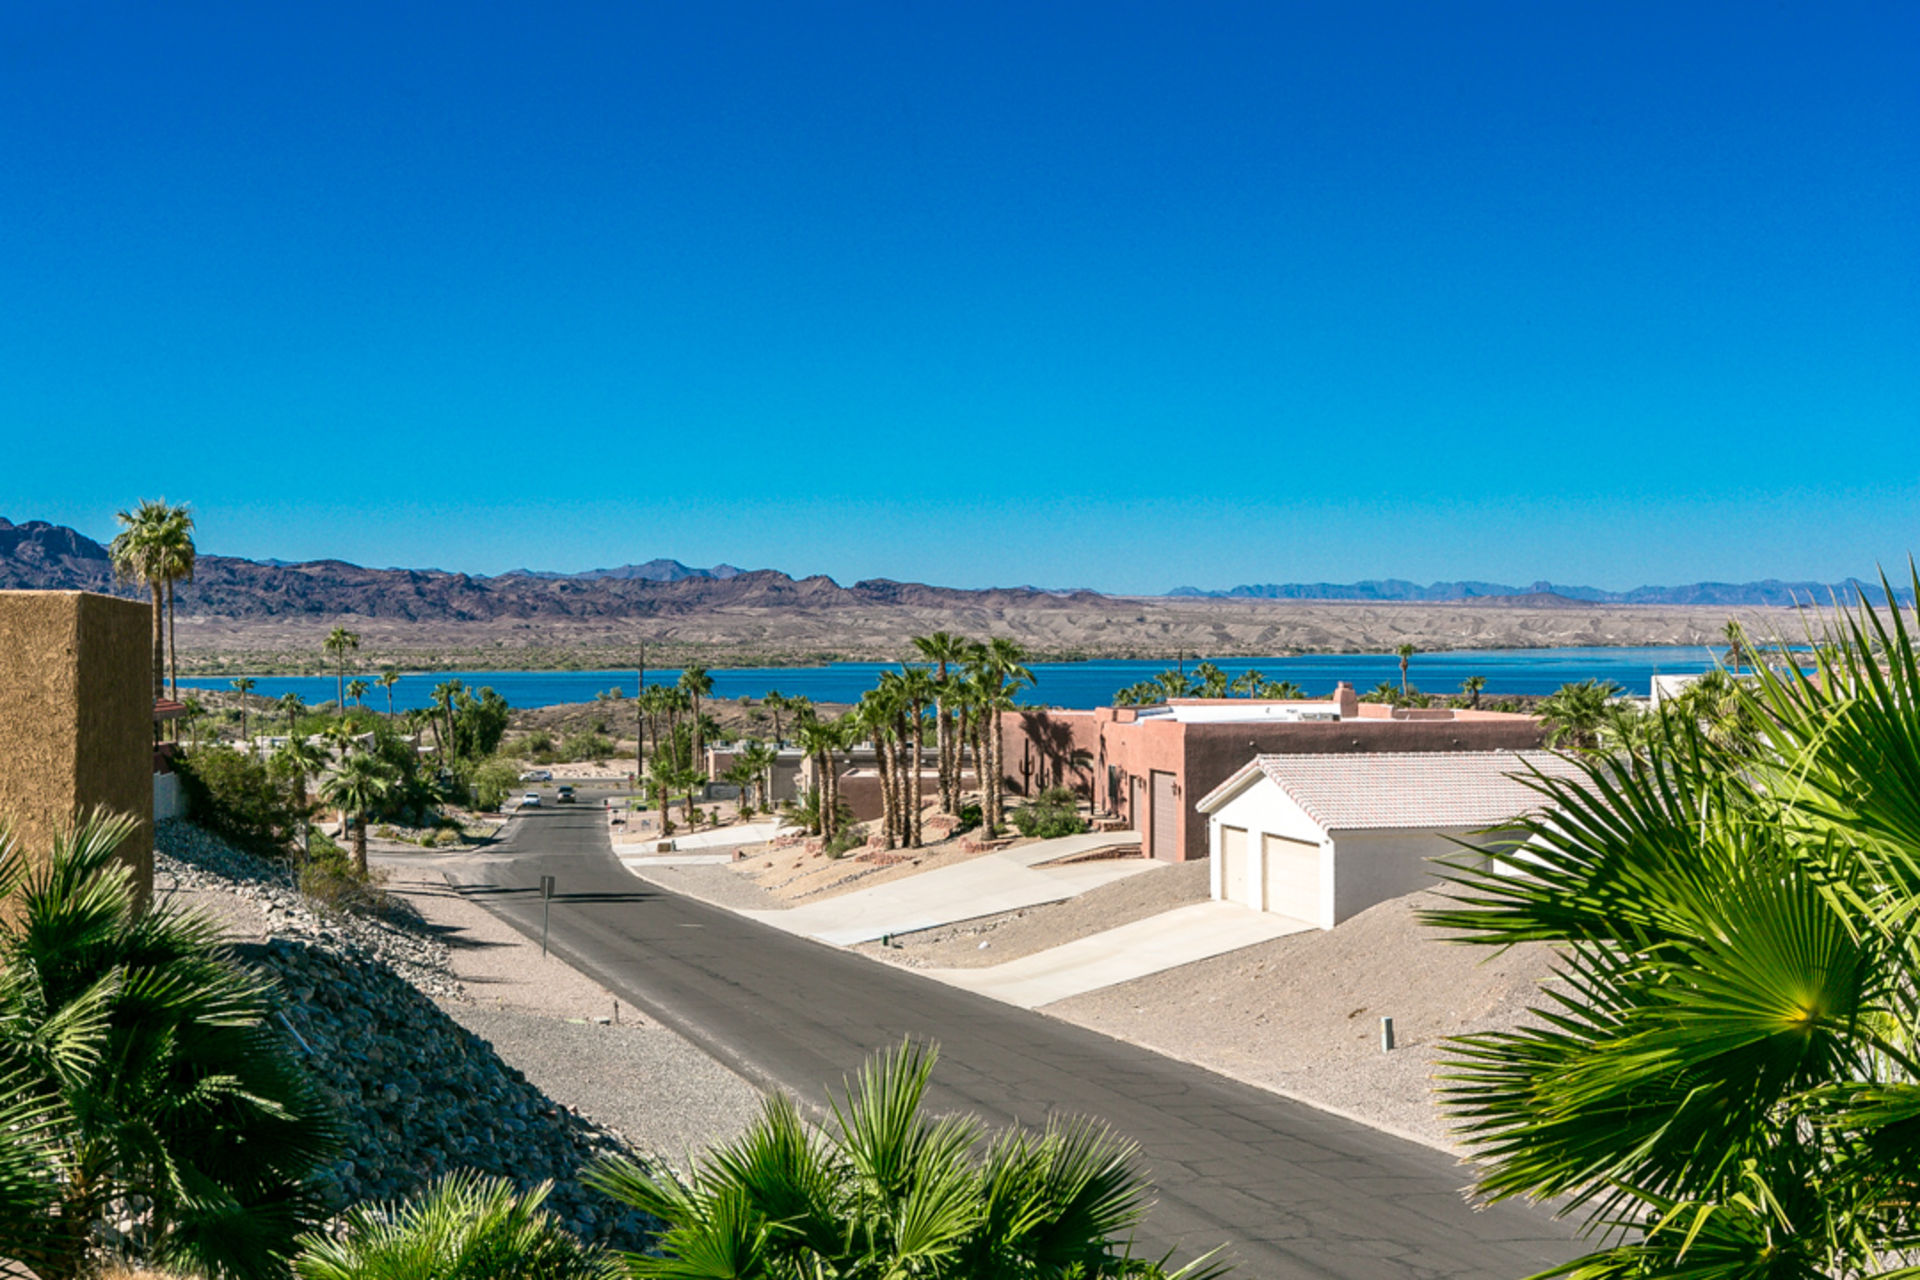 Searching or Curious about Havasu?